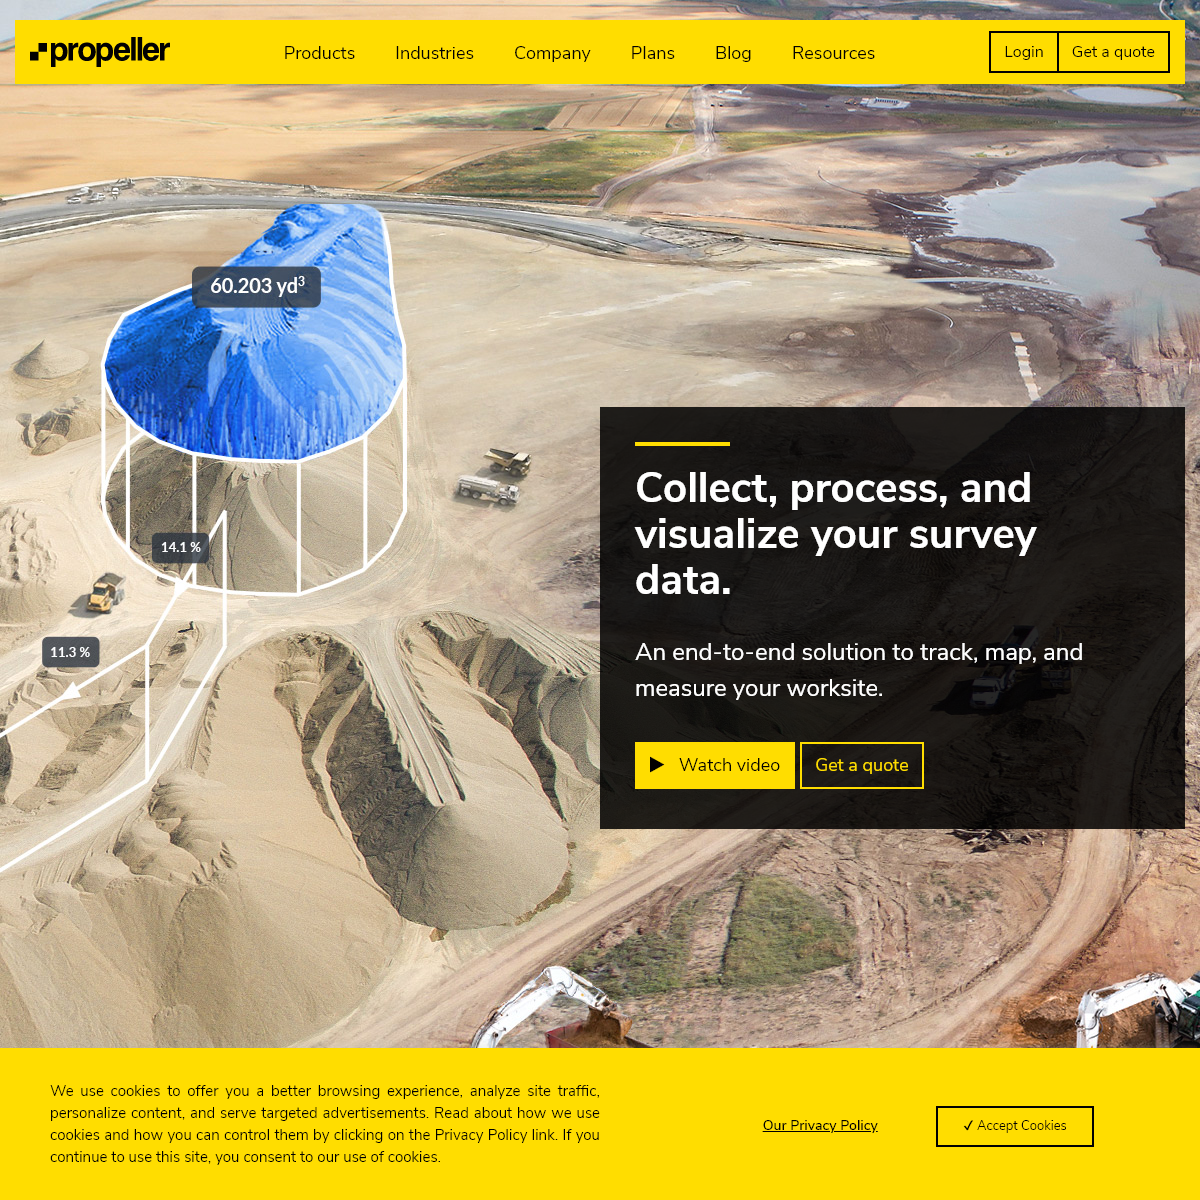 Propeller - 3D Drone Mapping & Analytics